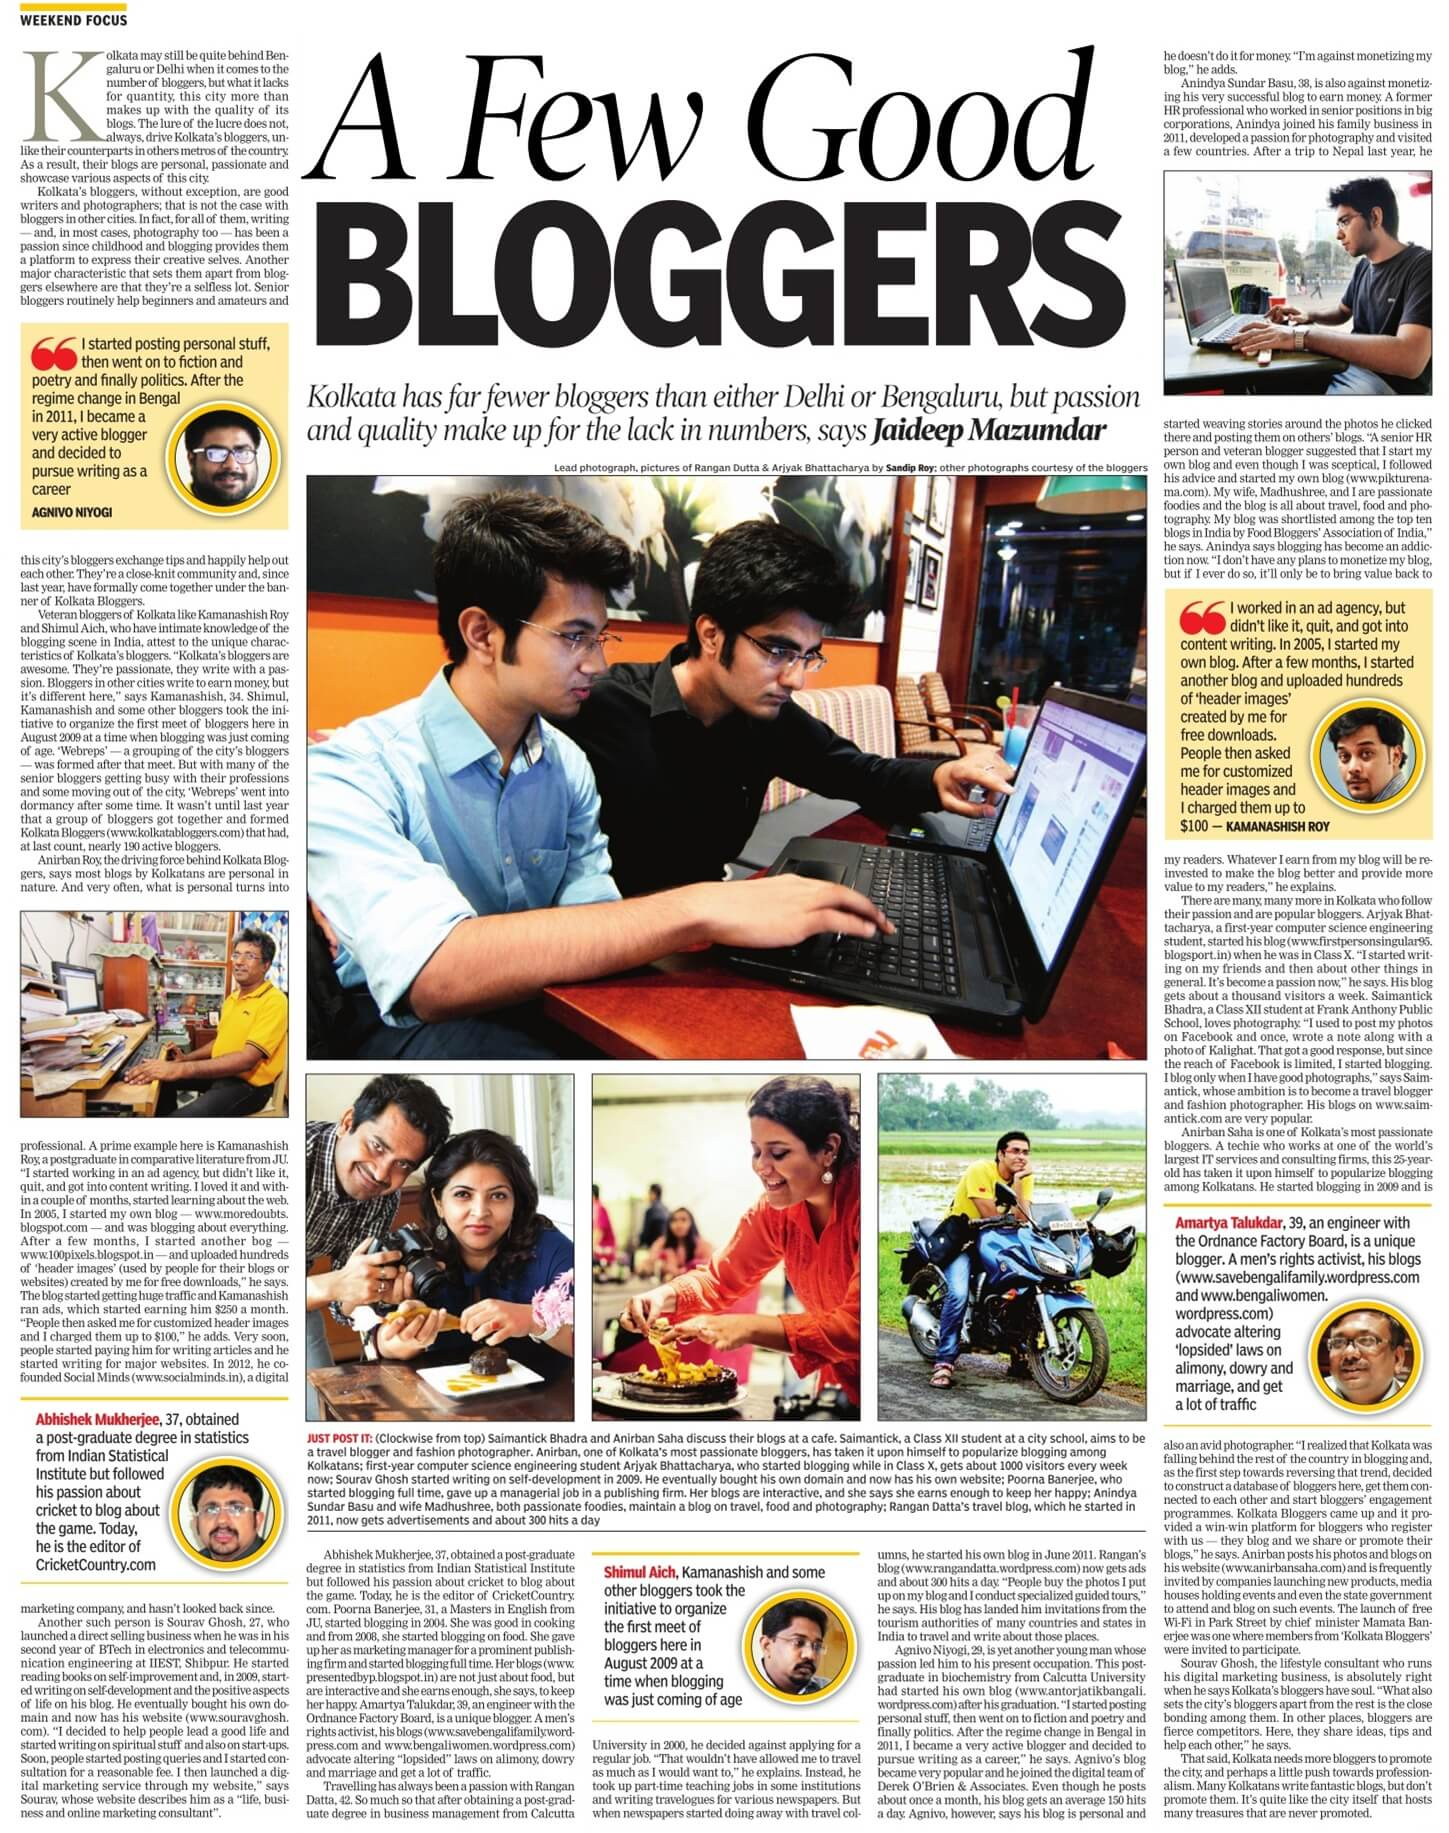 Few Good Bloggers Kolkata Bloggers on Times of India